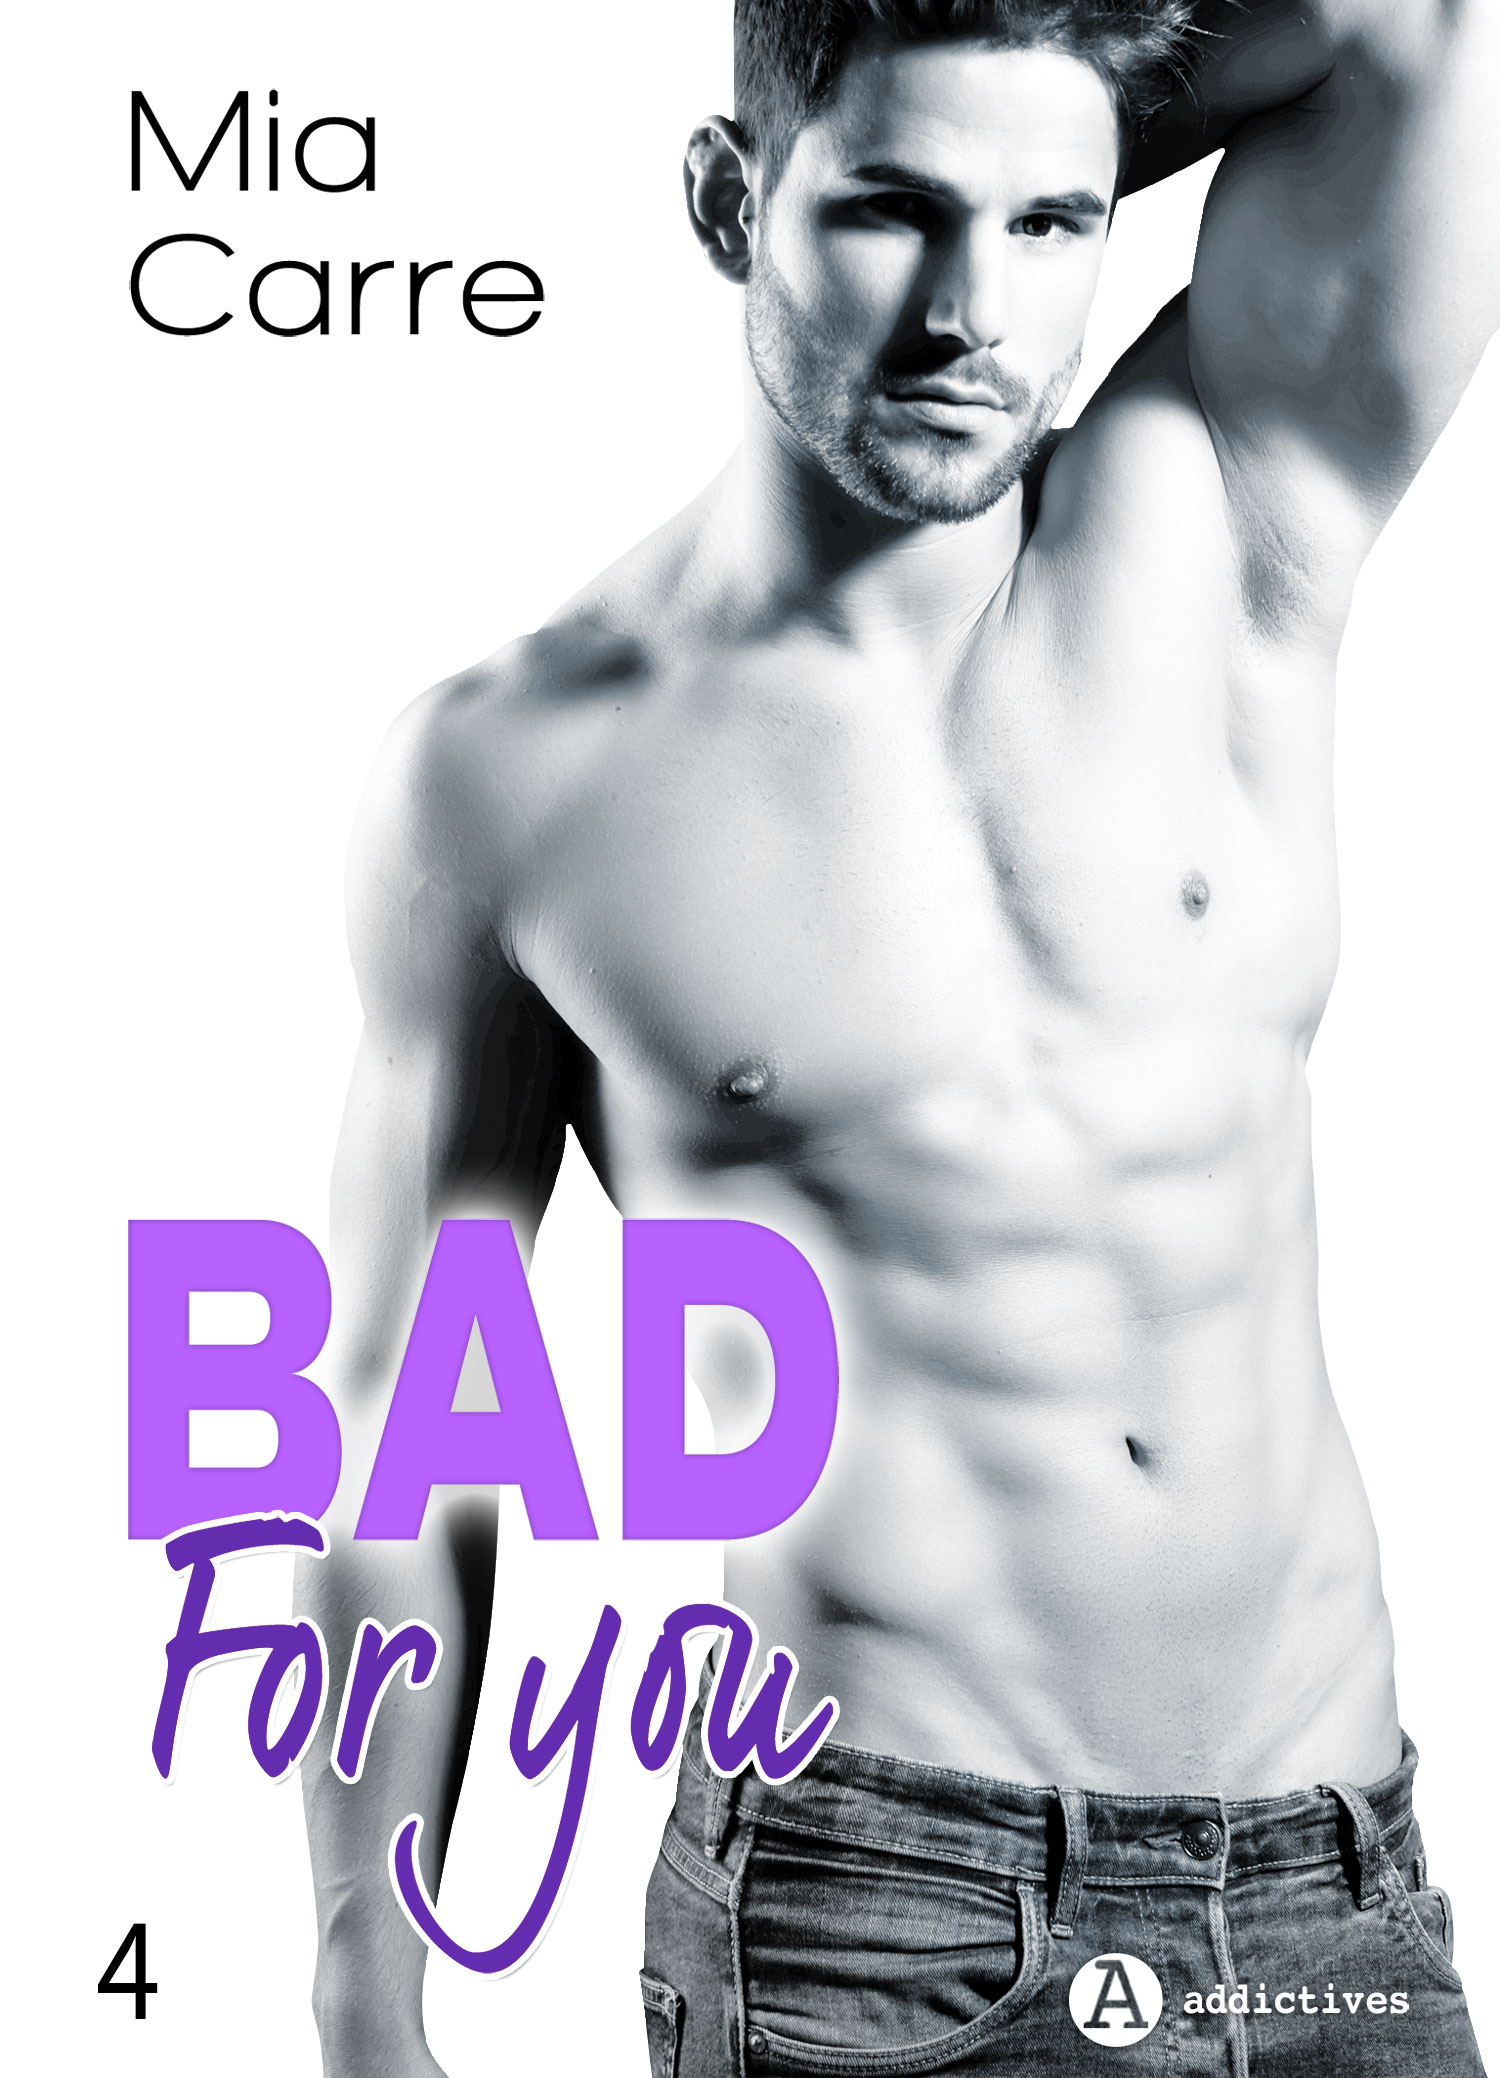 Bad for you – 4